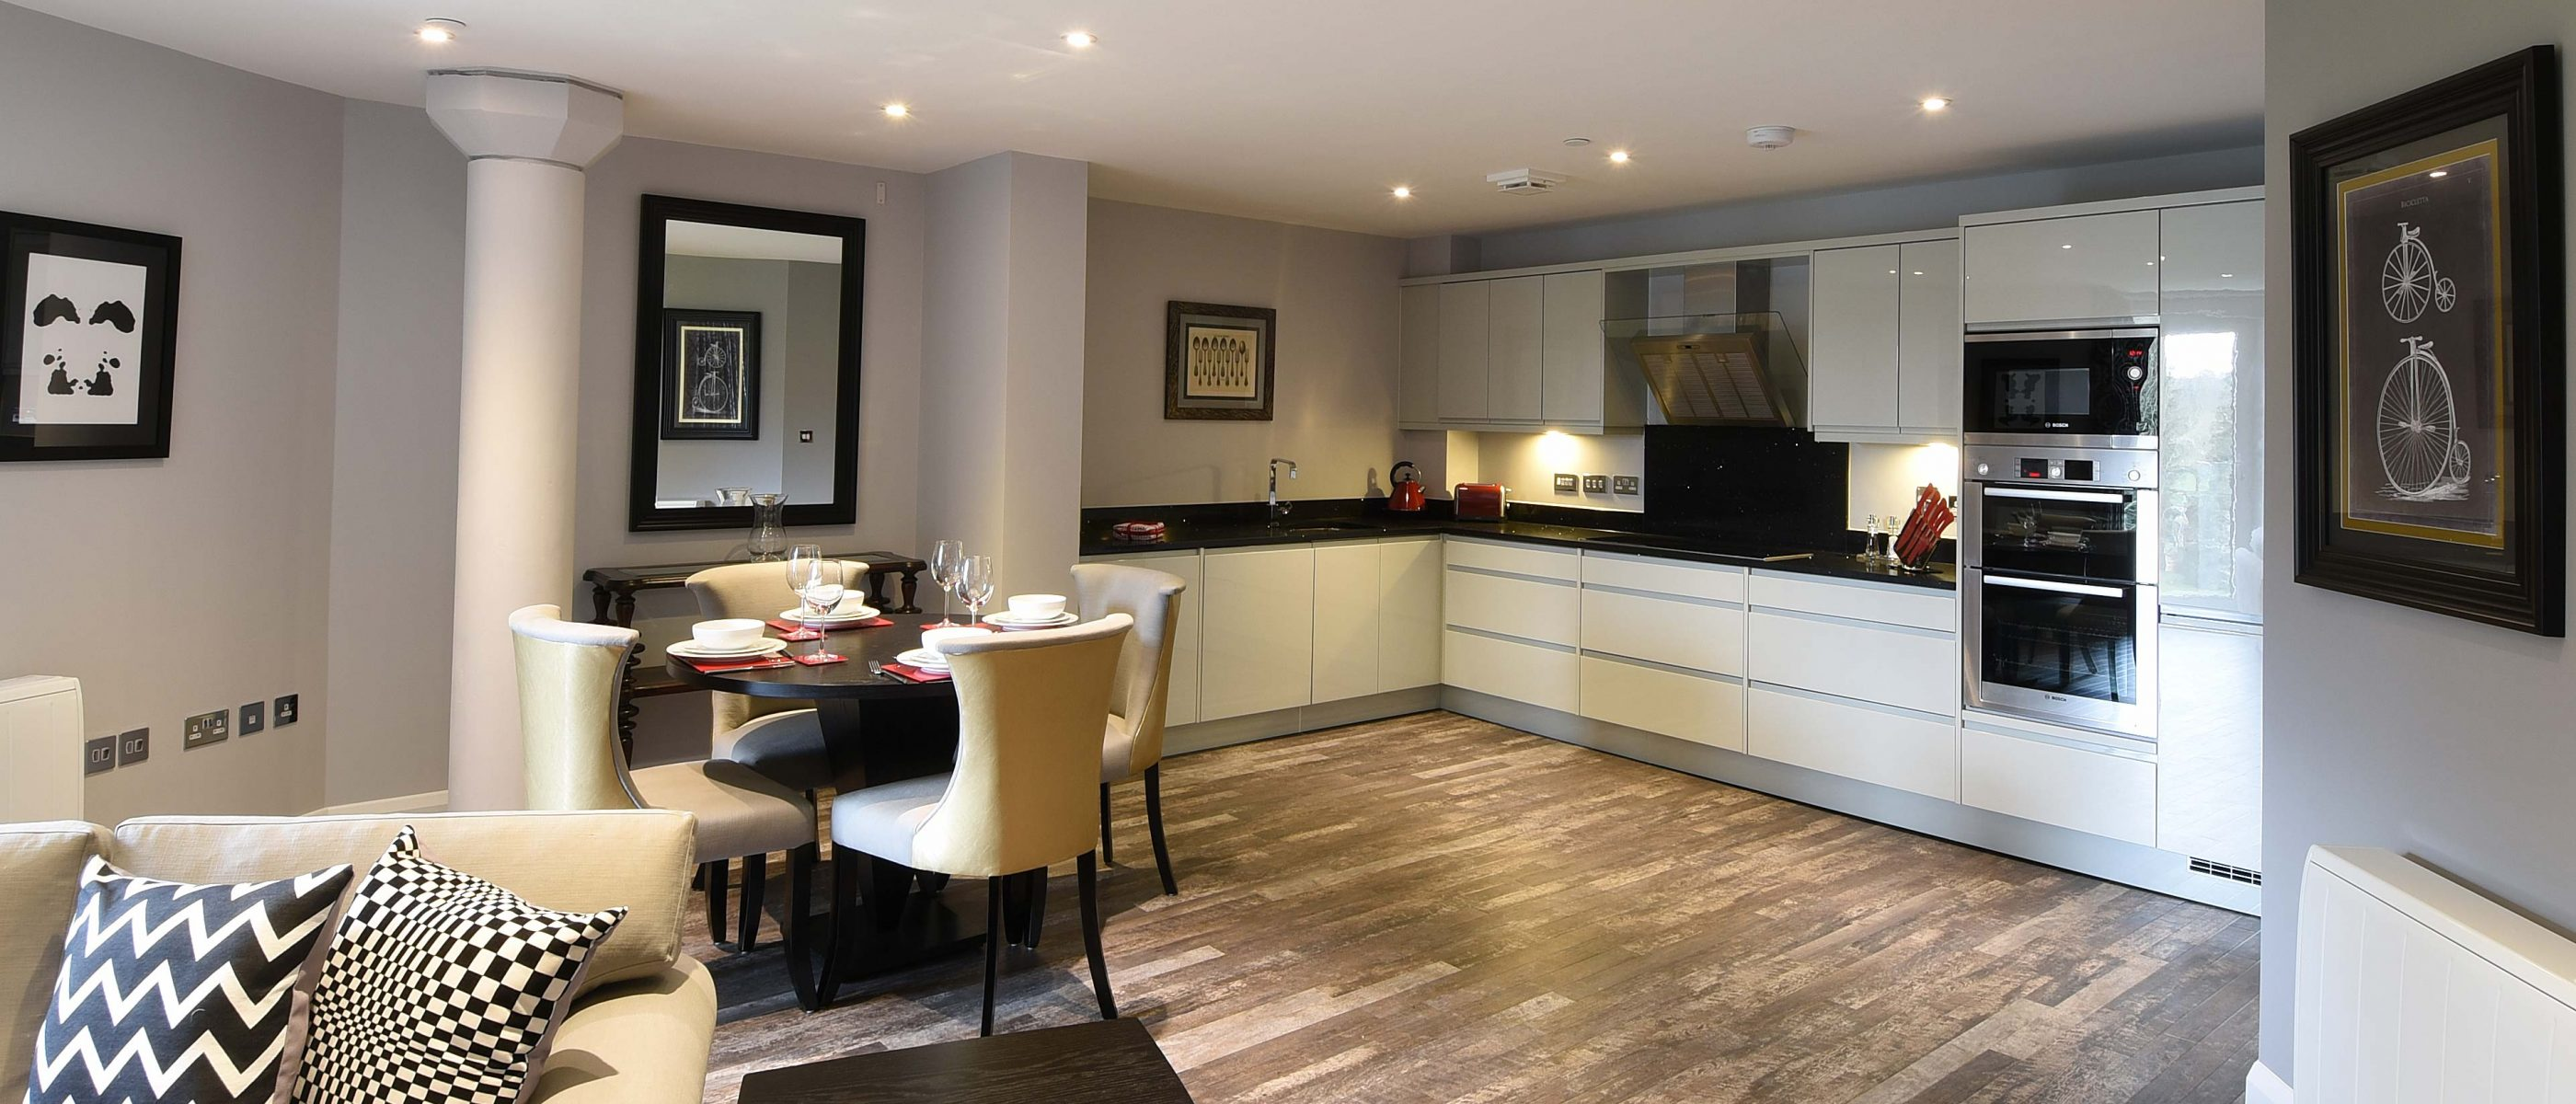 Living area in the Burford Suite: a one bedroom luxury serviced apartment at The Old Gaol, by the River Thames in Abingdon, near Oxford. Ideal accommodation for corporate or holiday short lets